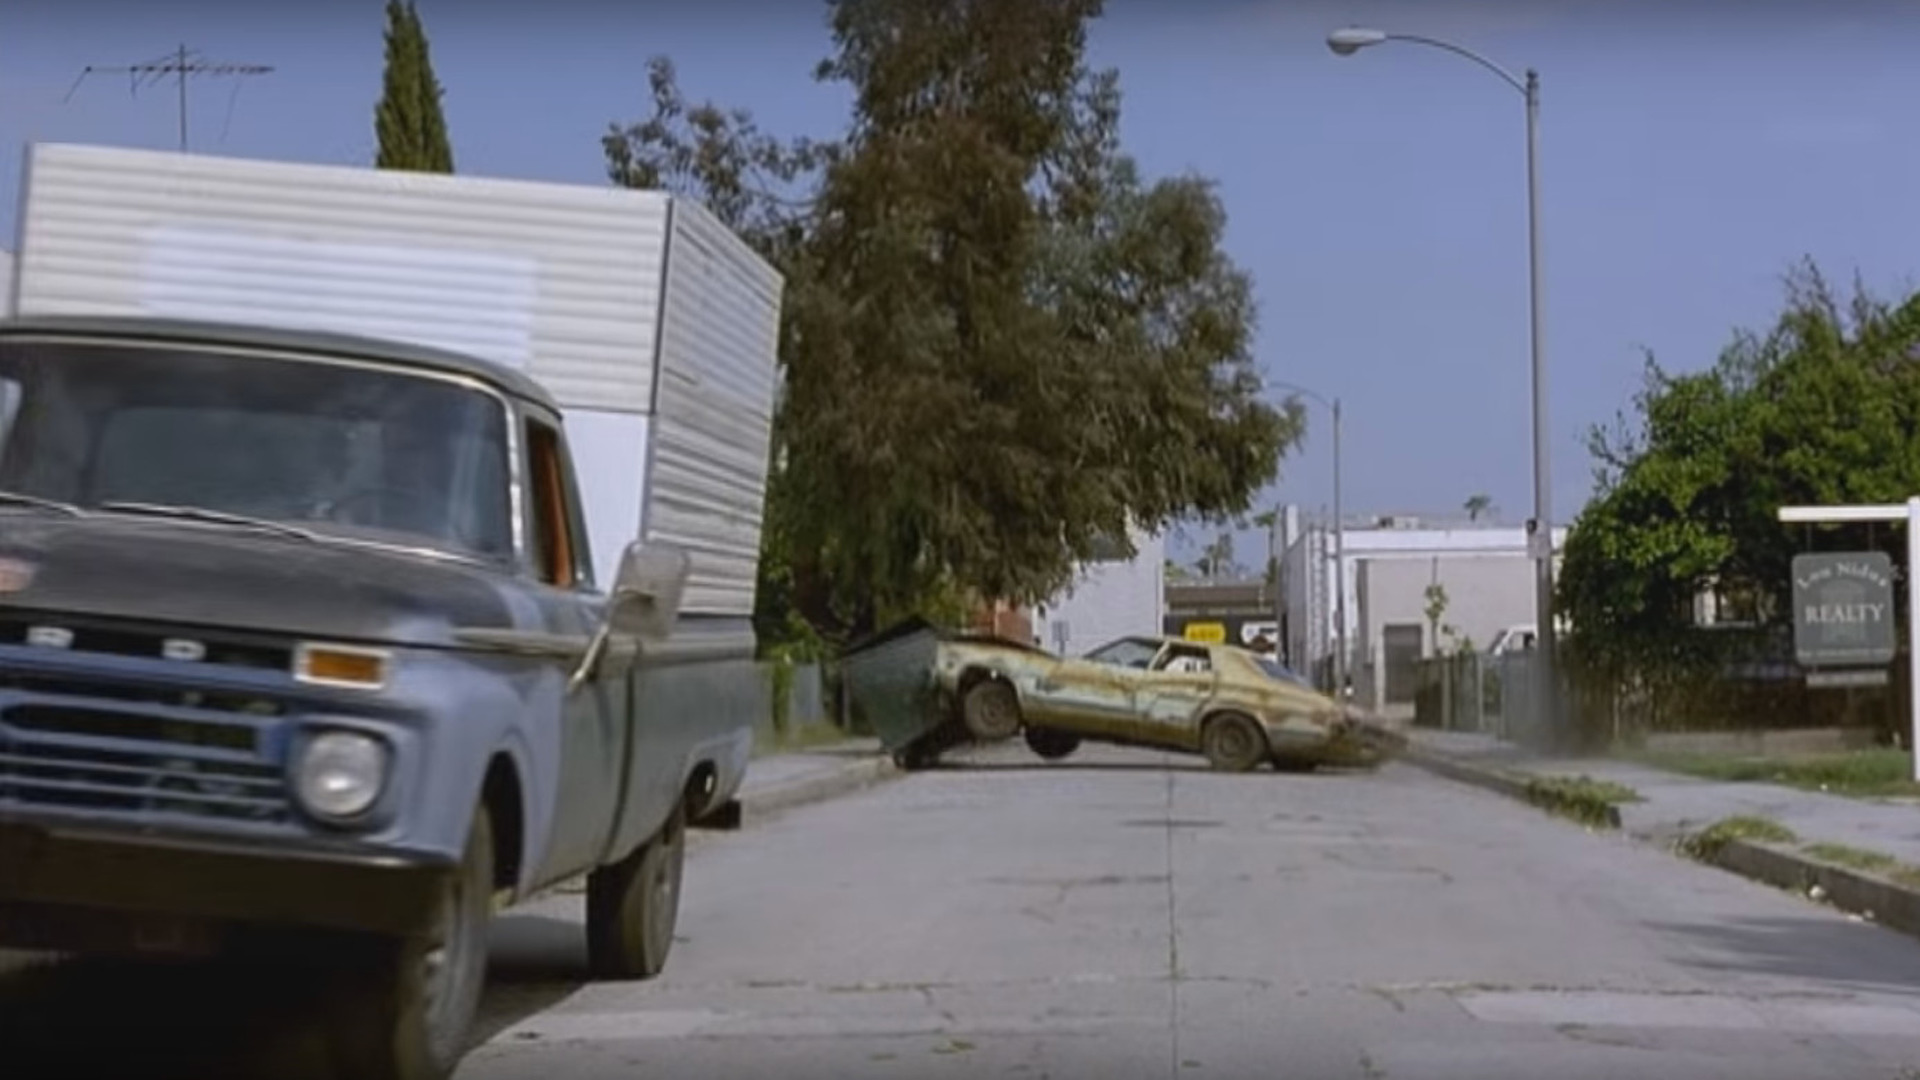 Small Big Lebowski cars greenlit for scale model production